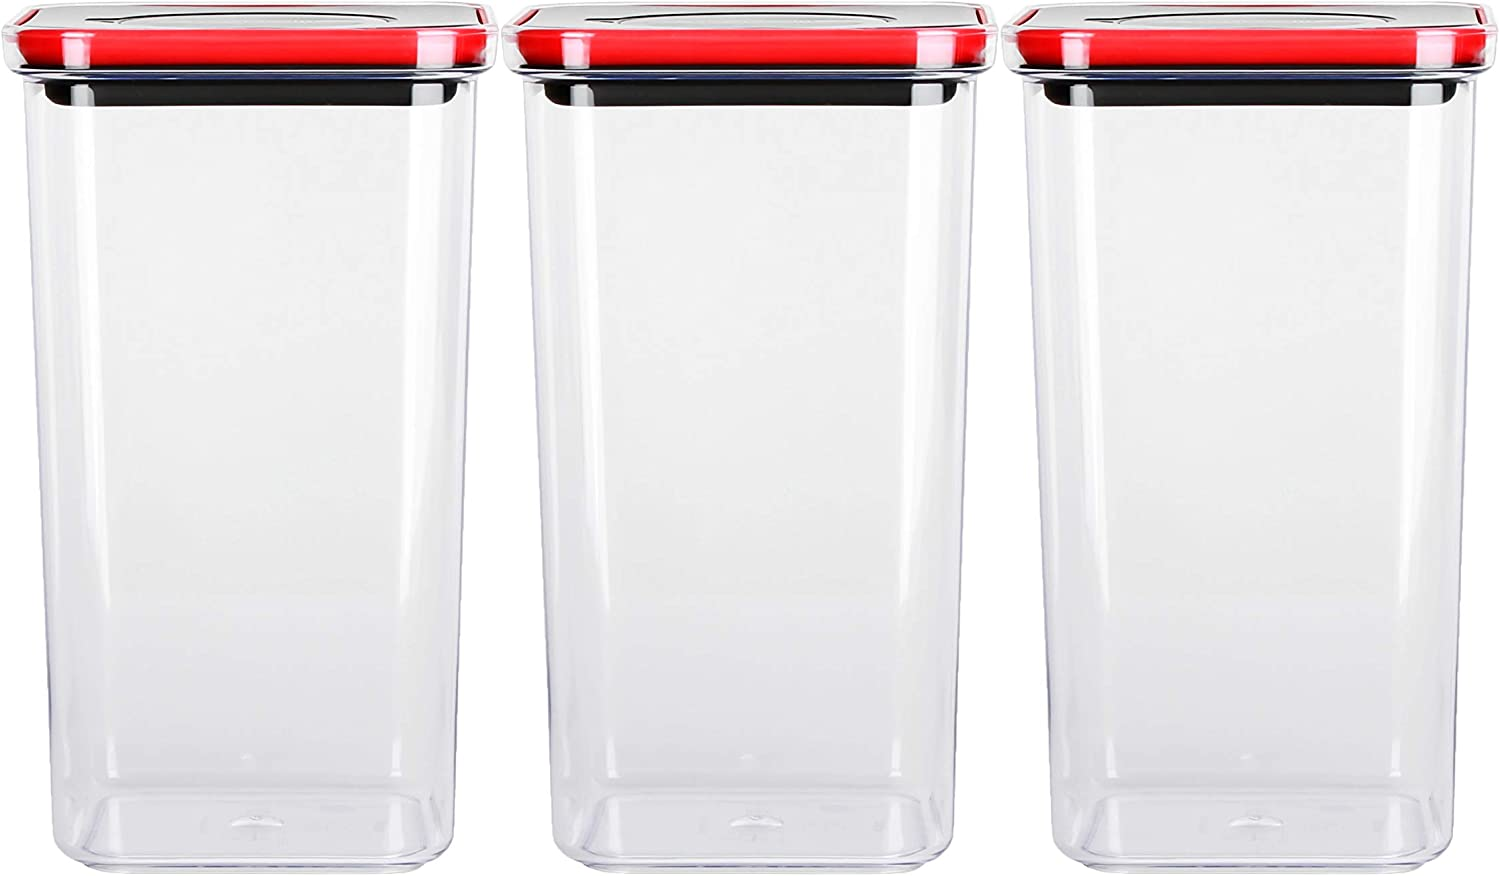 NEOFLAM Airtight Smart Seal Food Storage Container (Set of 3, Square) | Crystal Clear Body | Modular, Stackable, Nestable Design | Easy to Clean, BPA Free (2.1 L, 71 oz)